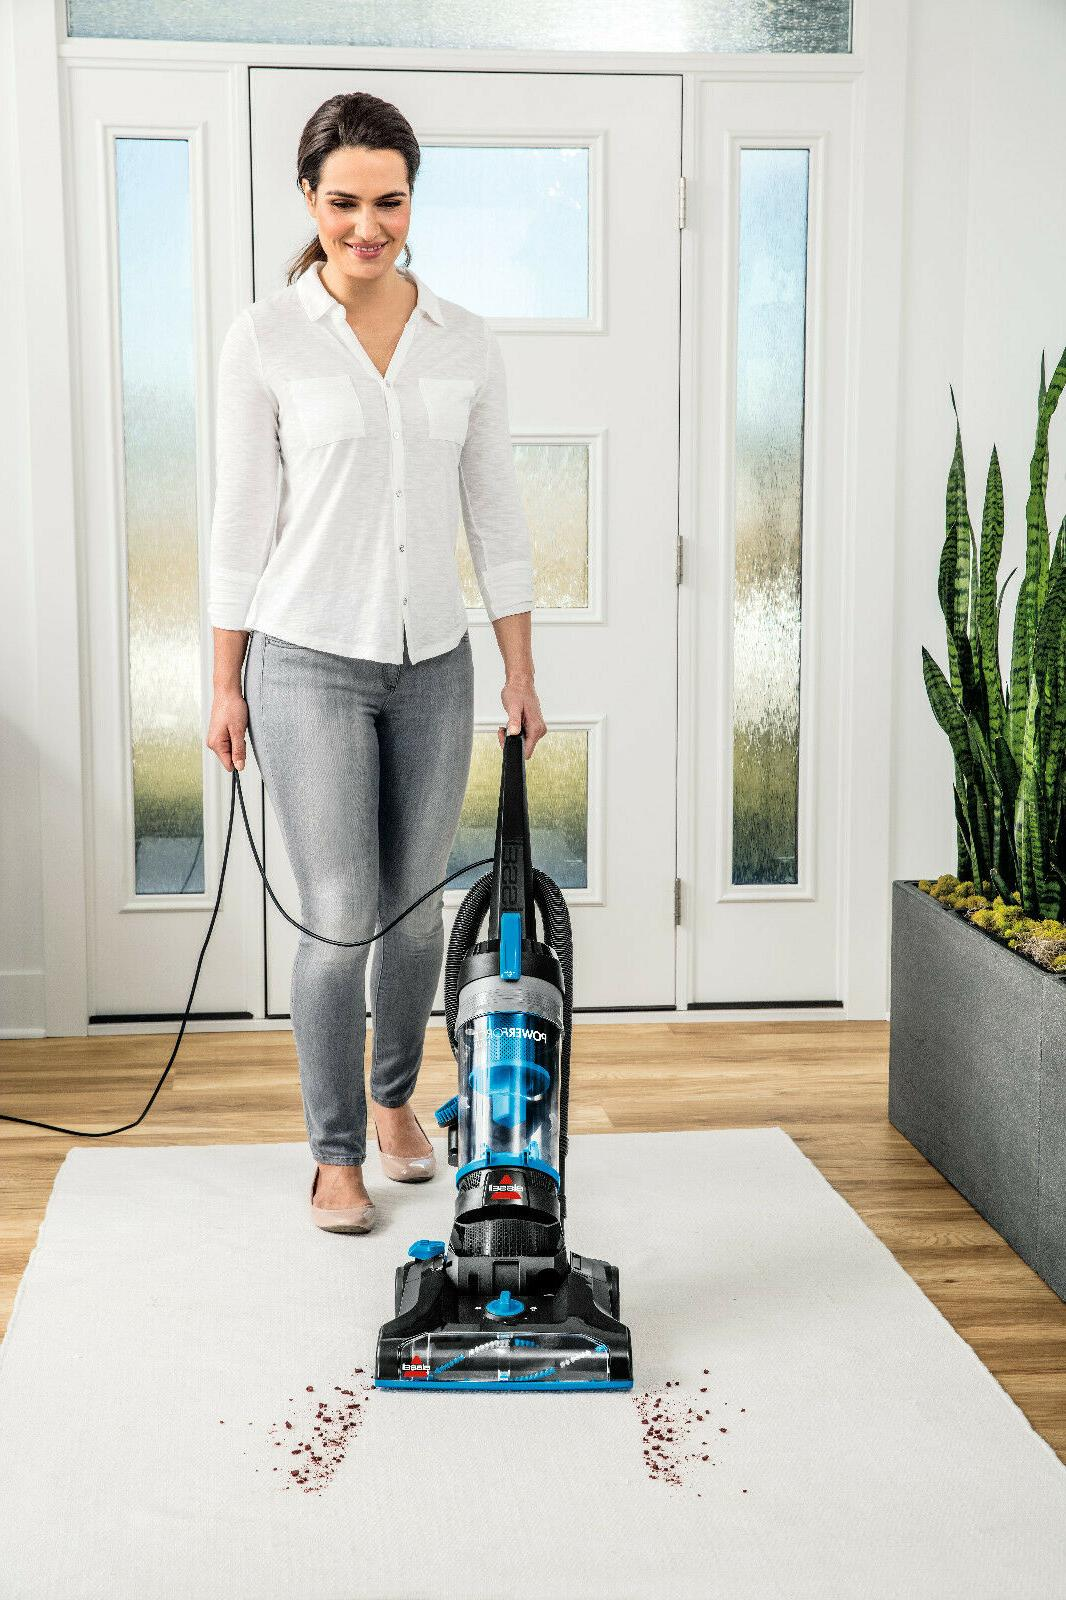 BISSELL Helix Upright Corded Cleaner Floor